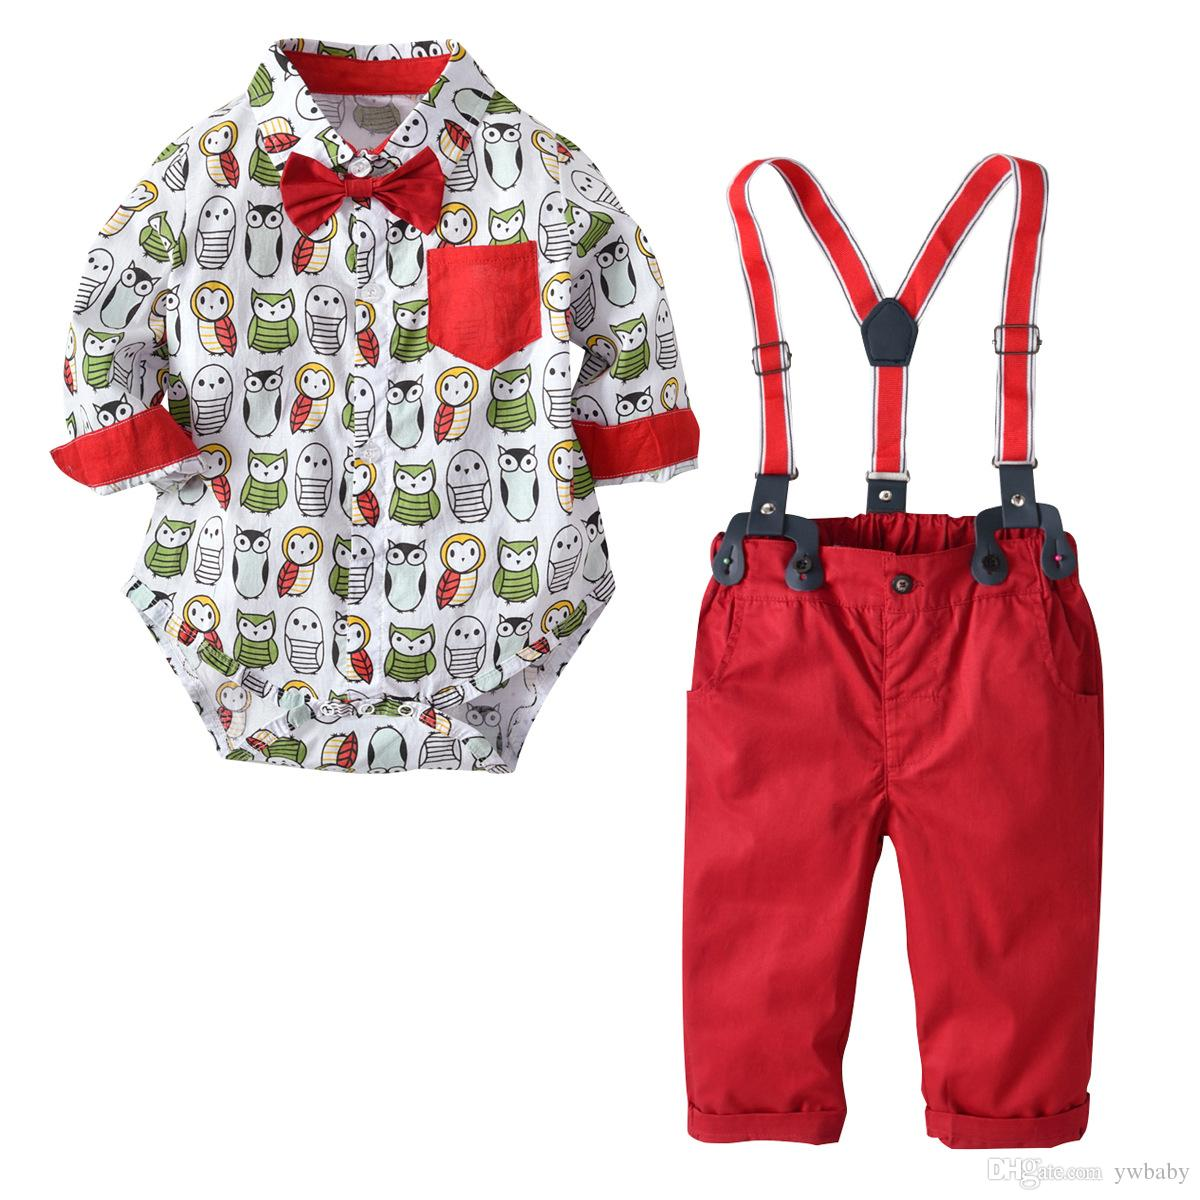 3dfd1235f311 2019 Baby Boy Clothes Sets Kids Clothing Christmas Boy Floral ...